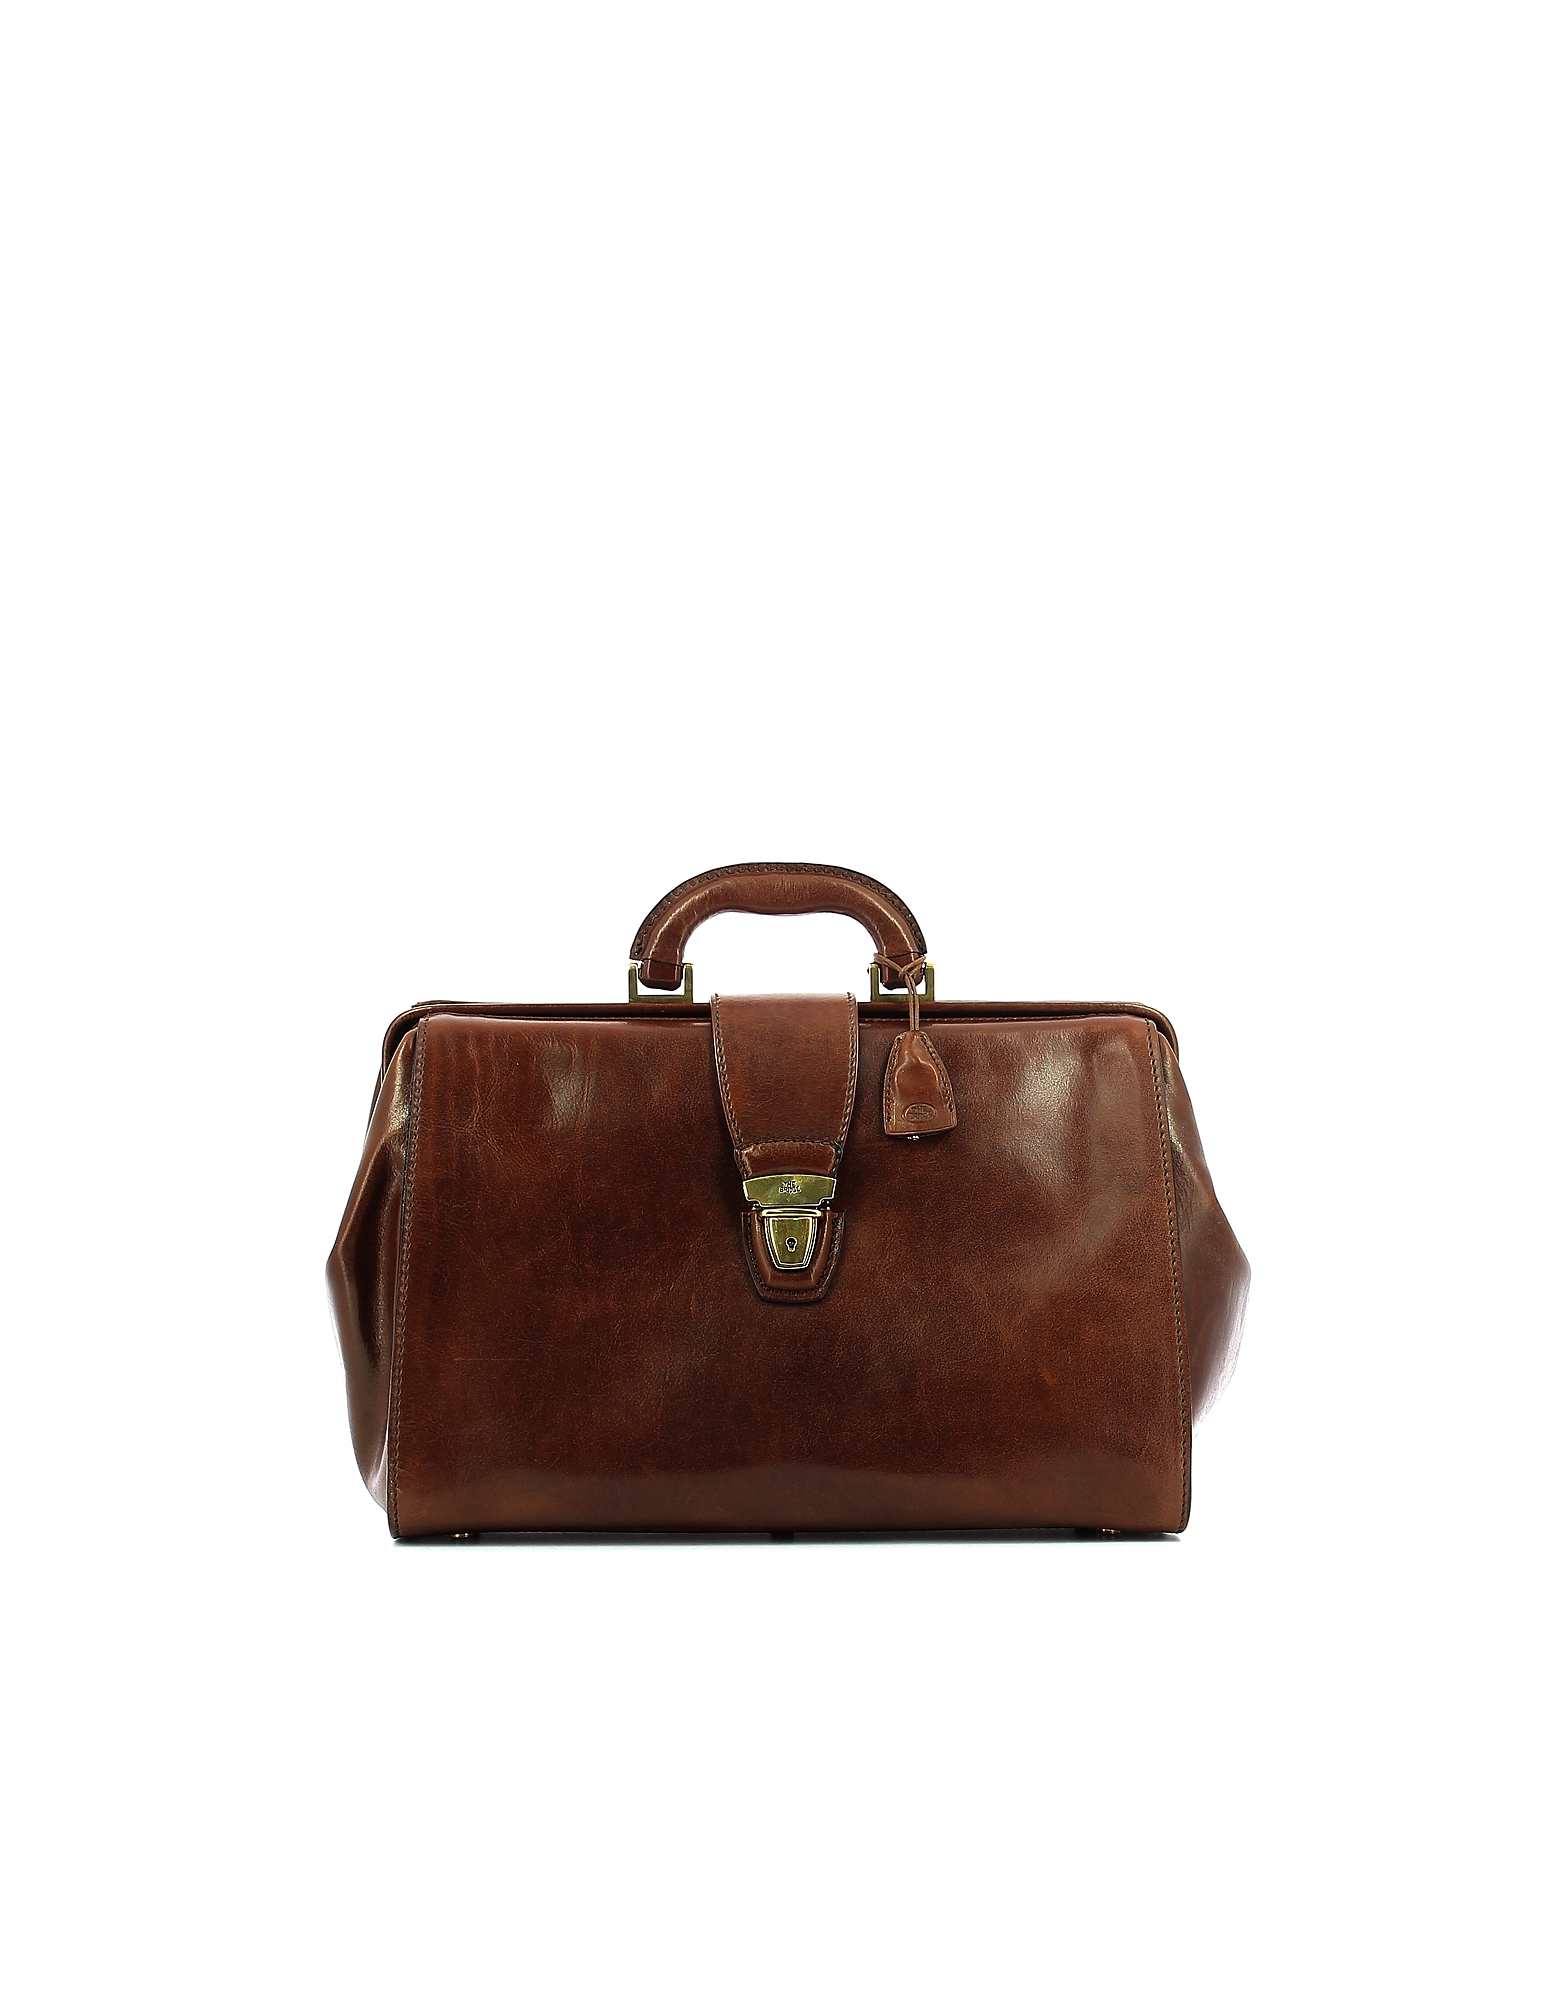 The Bridge Designer Doctor Bags, Brown Leather Story Doctor Bag